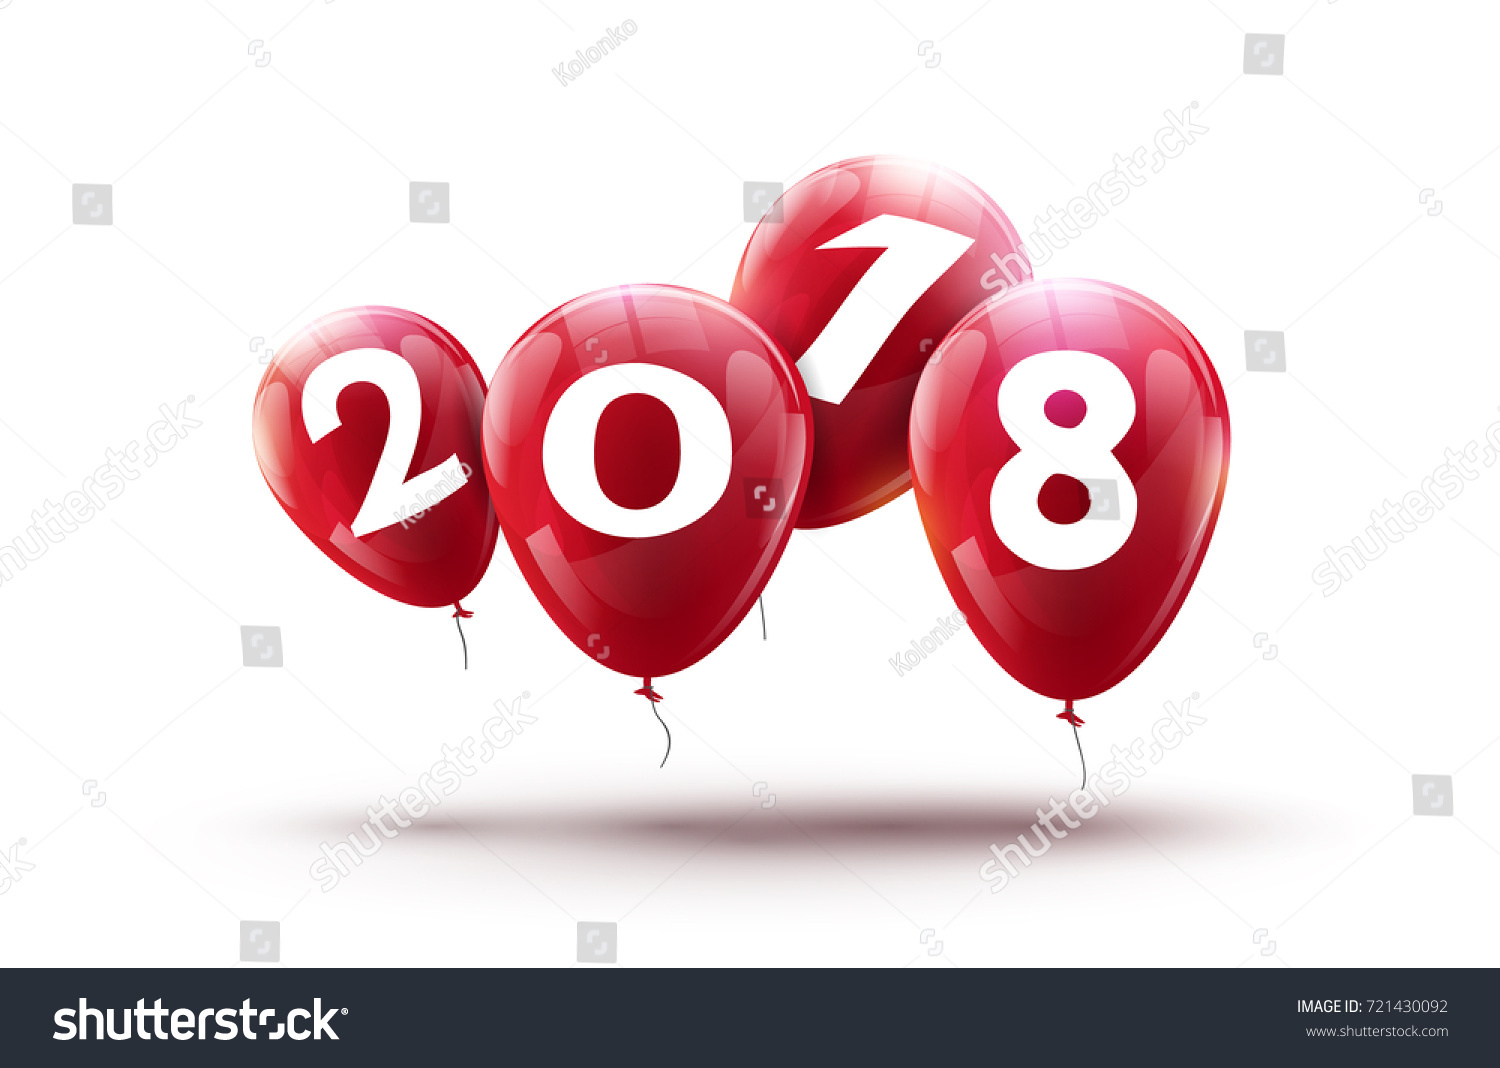 new 2018 year balloons design happy balloon vector decoration for new year celebration